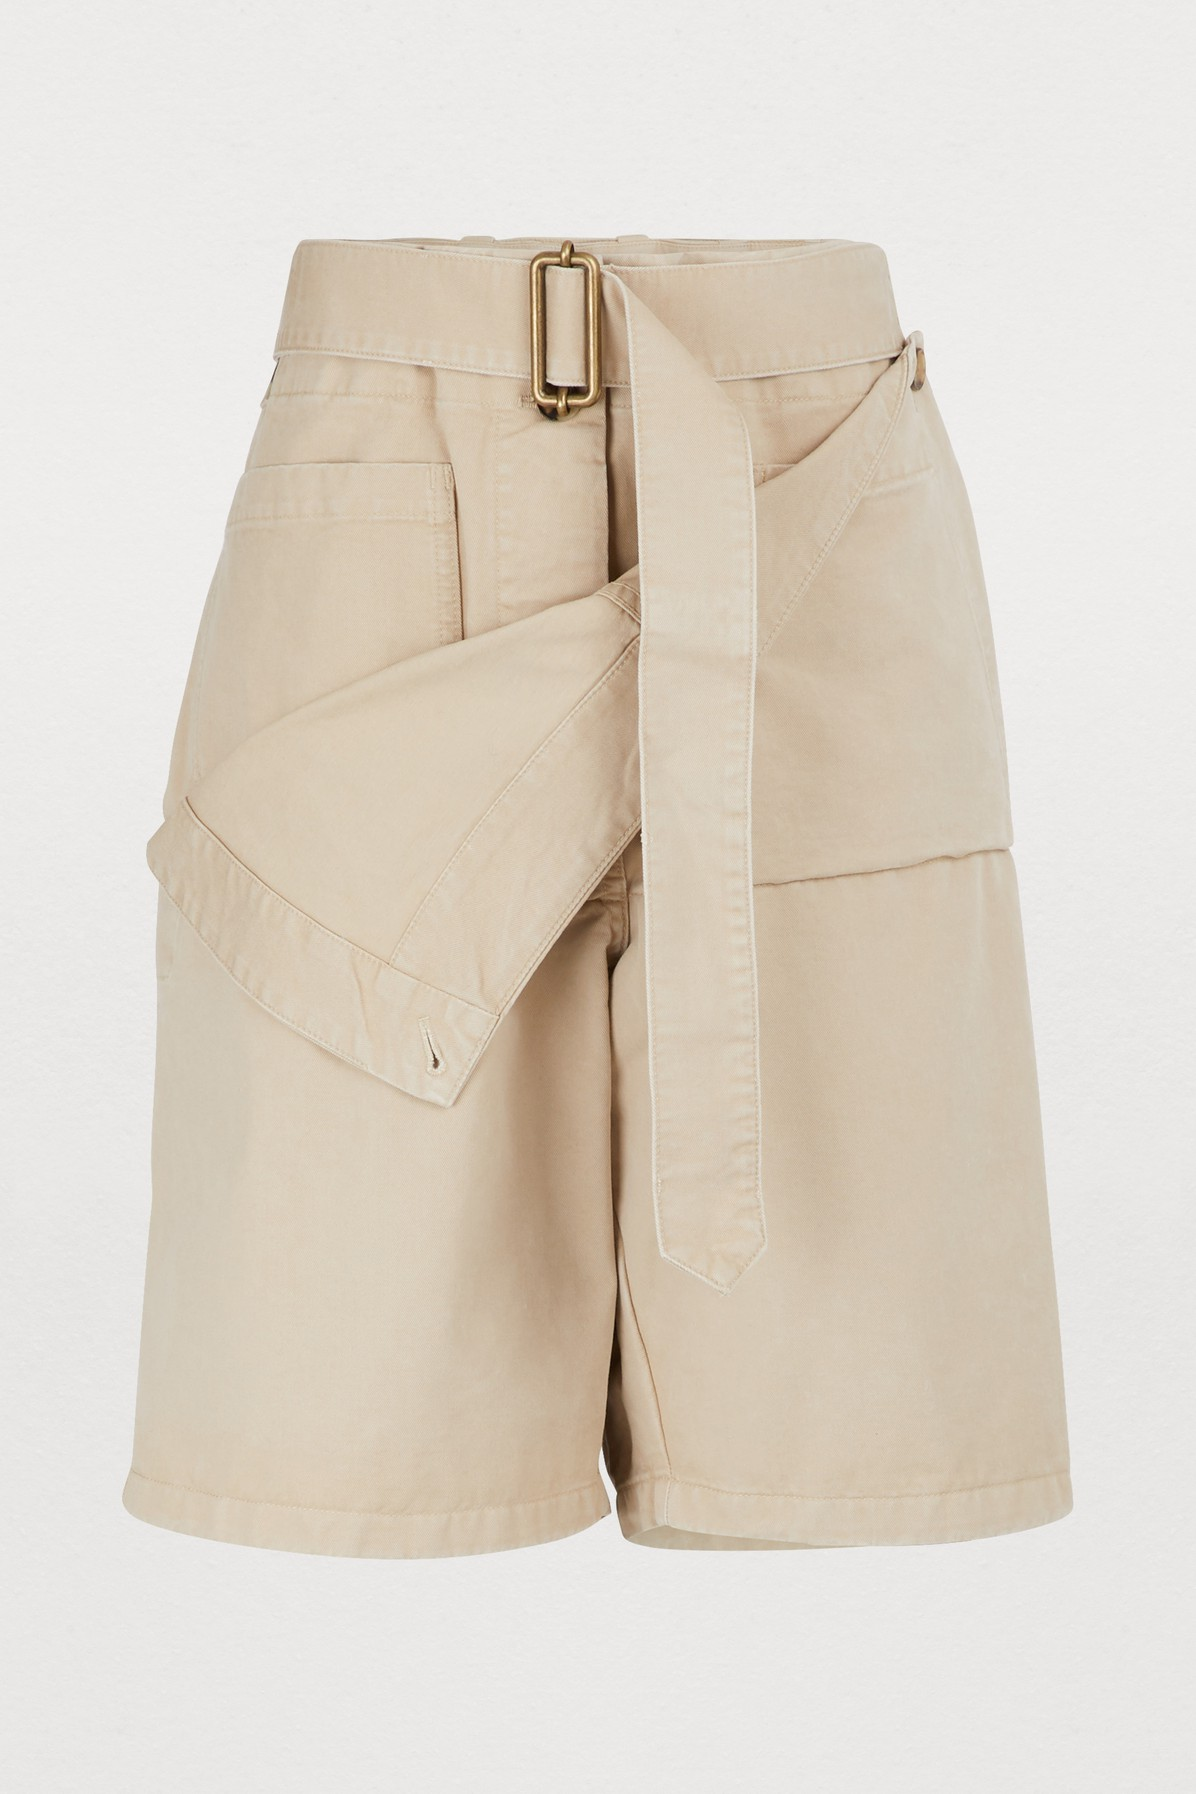 J.w.anderson BUTTONED SHORTS